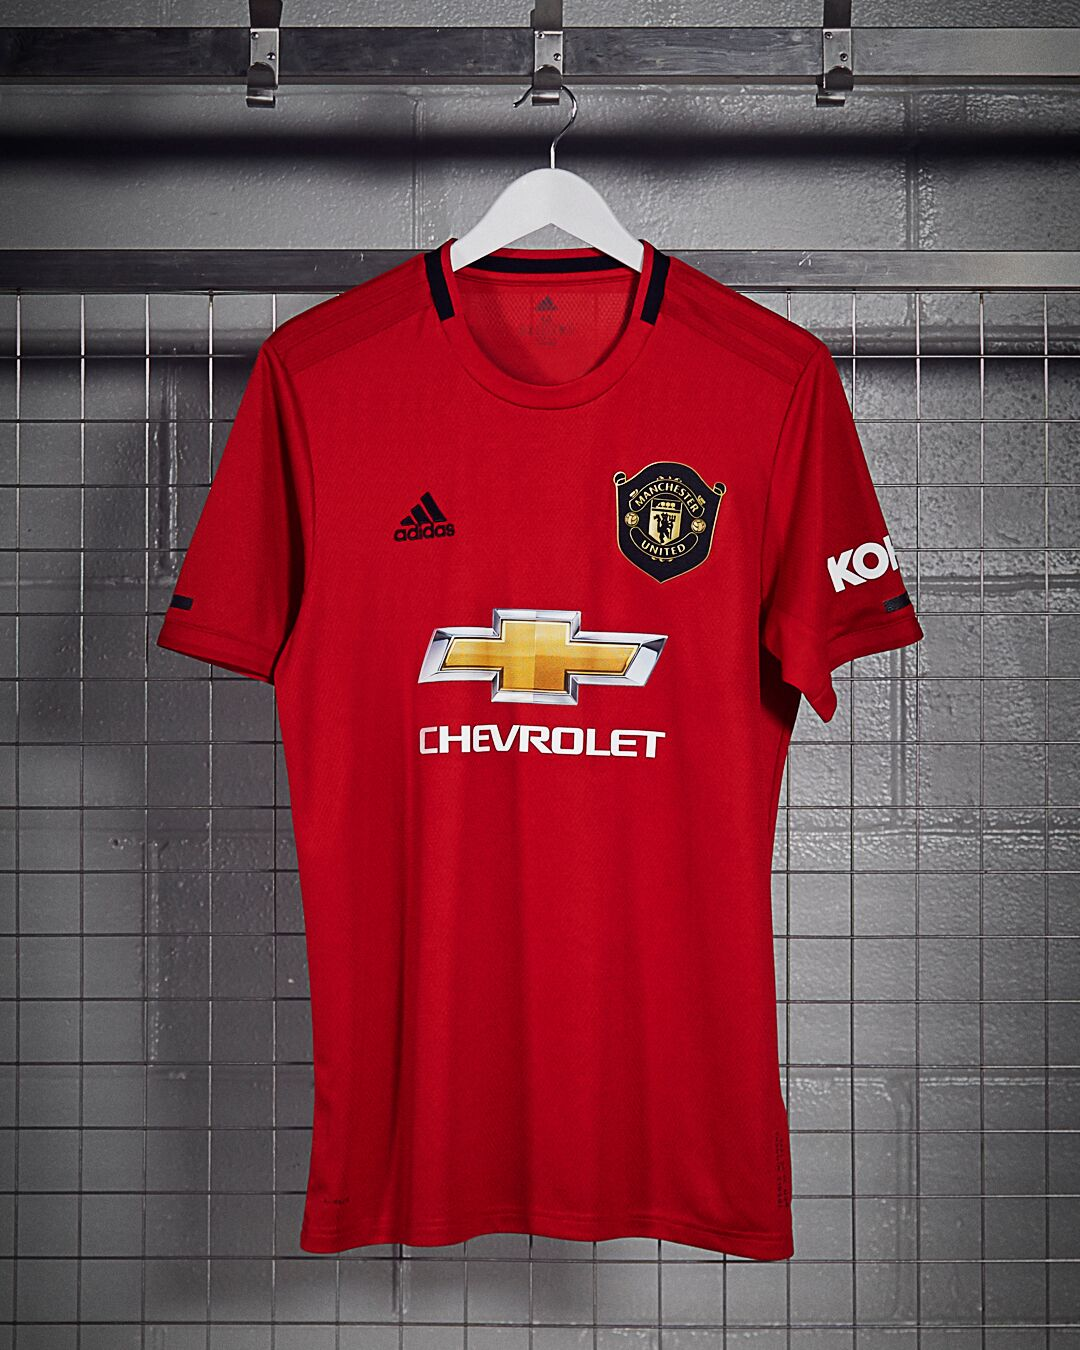 buy online e139b 81bbe New Manchester United 19/20 home shirt celebrating treble ...